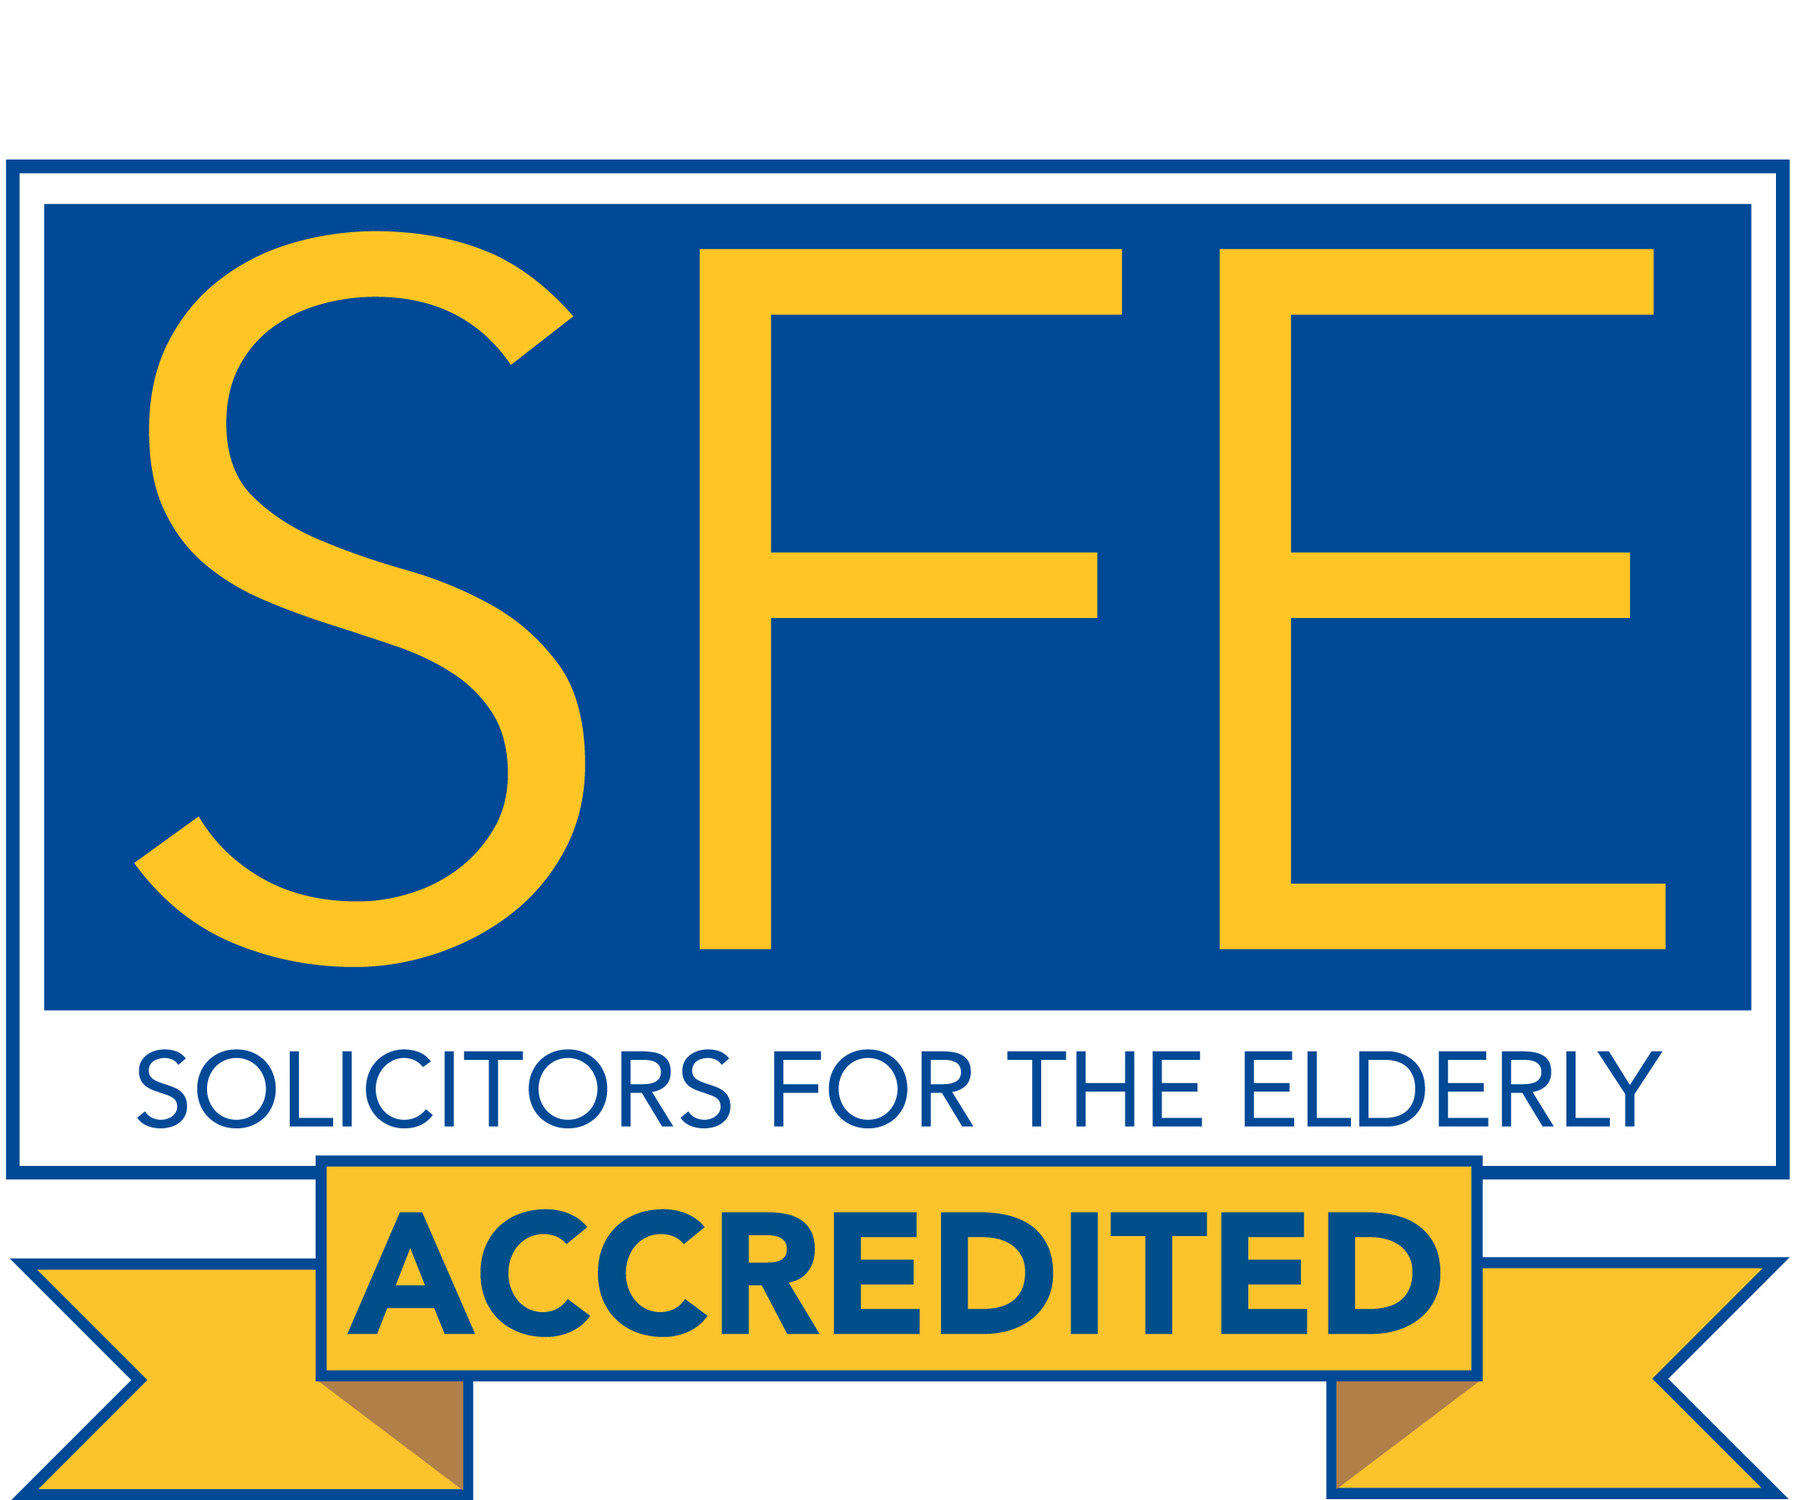 solicitors for the elderly accredited